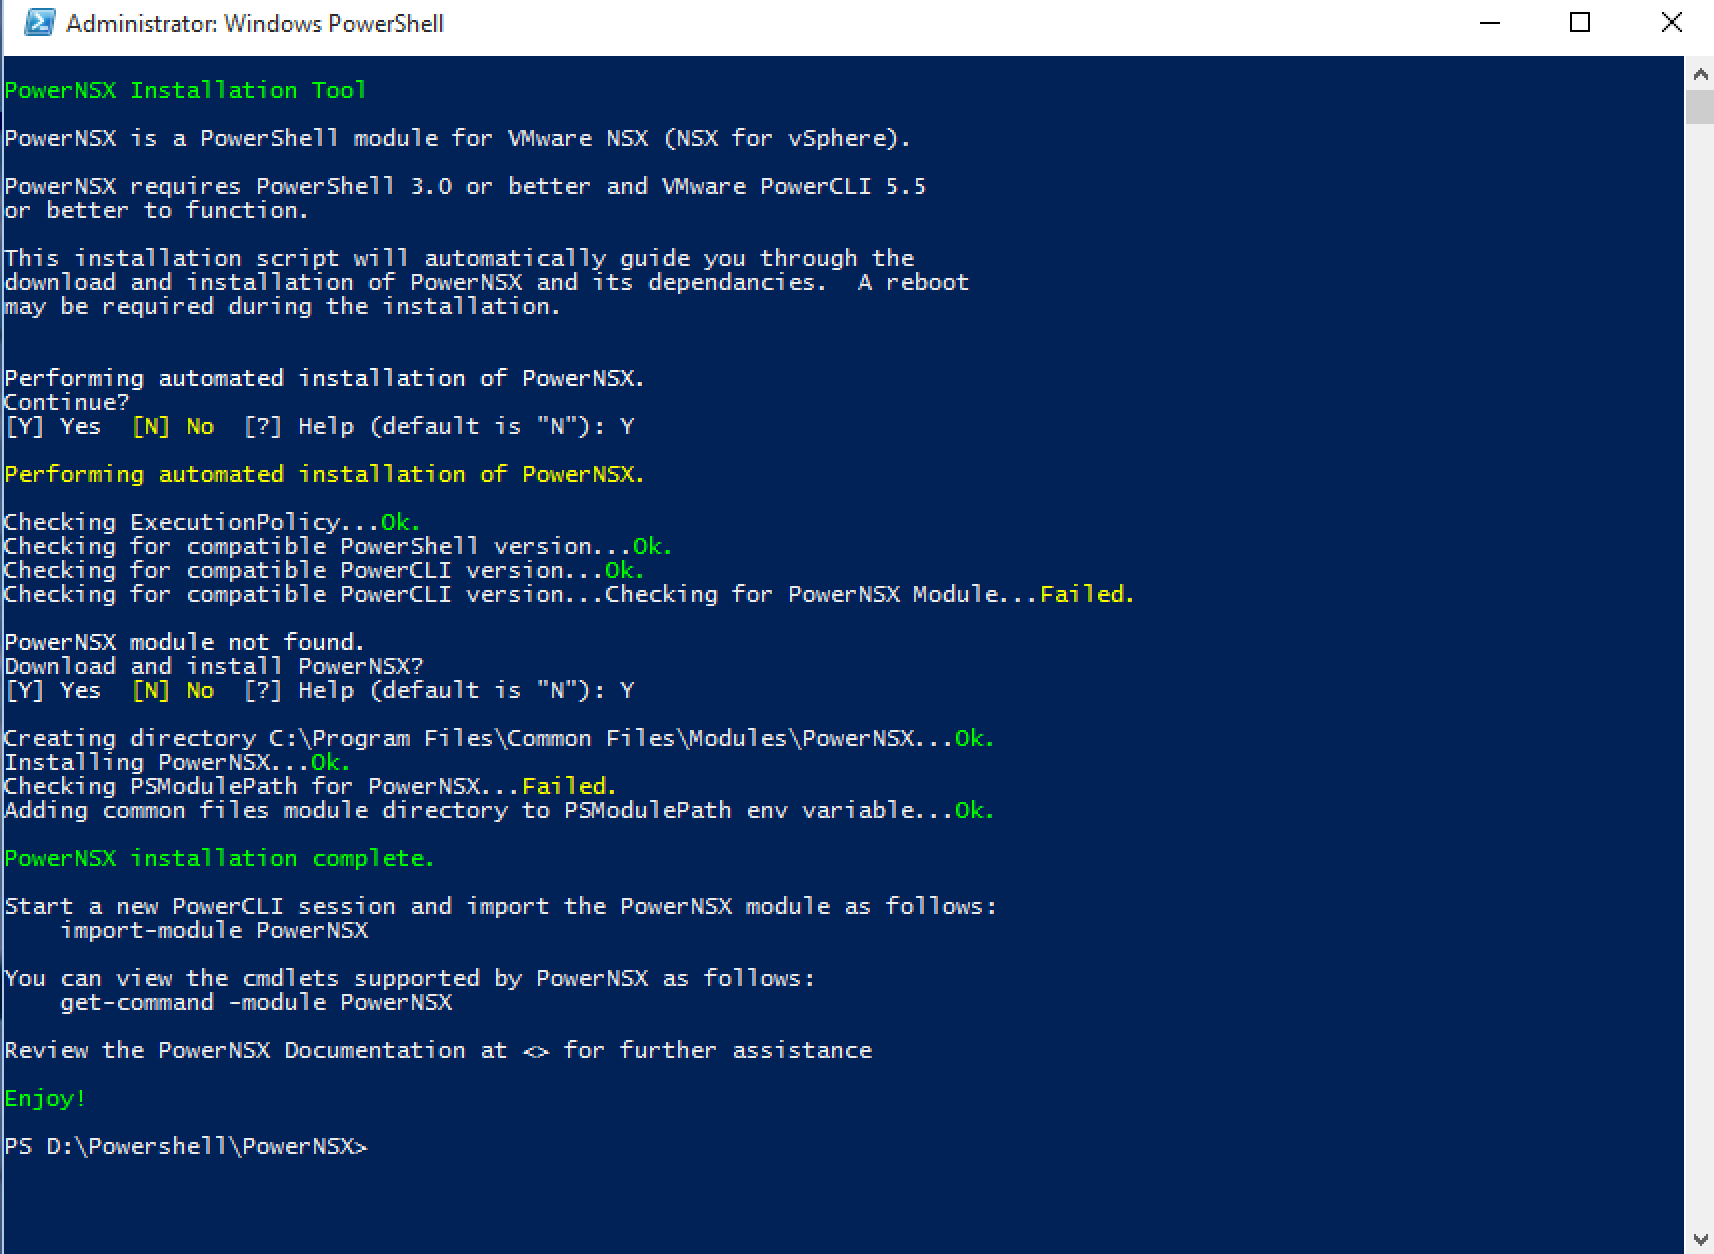 VMware NSX PowerShell Extension Open Sourced